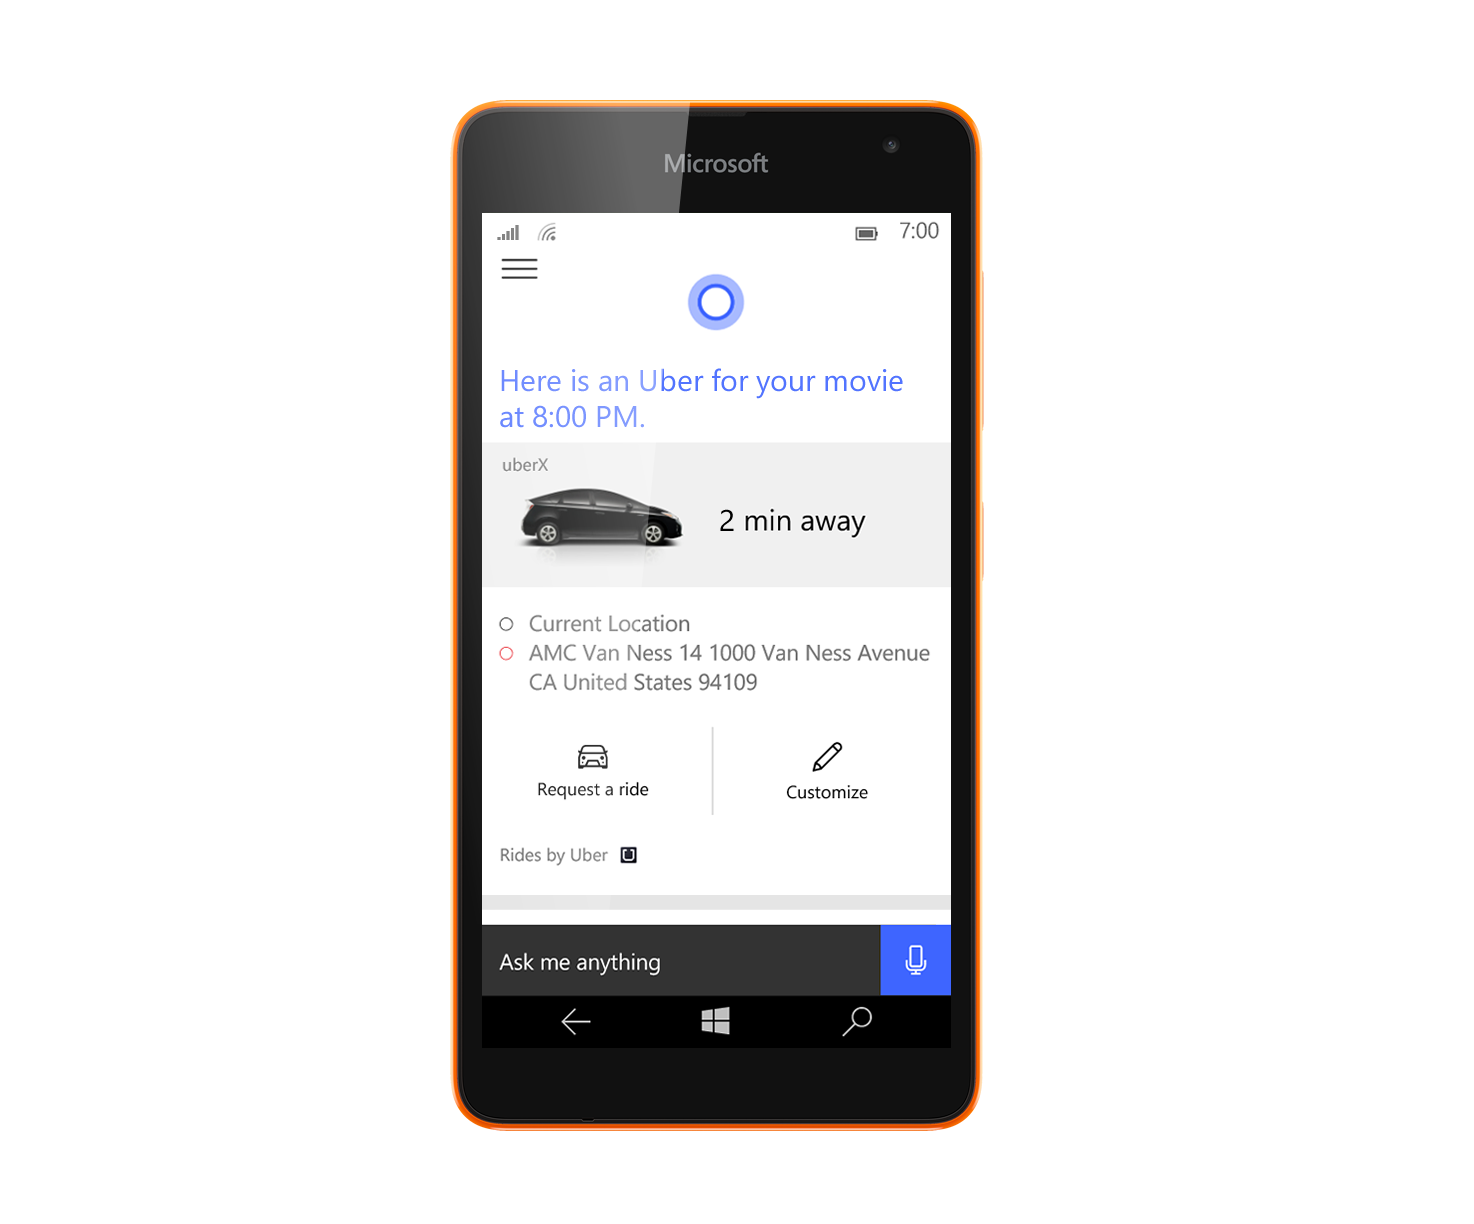 Uber Windows 10 Windows 10 Mobile Cortana